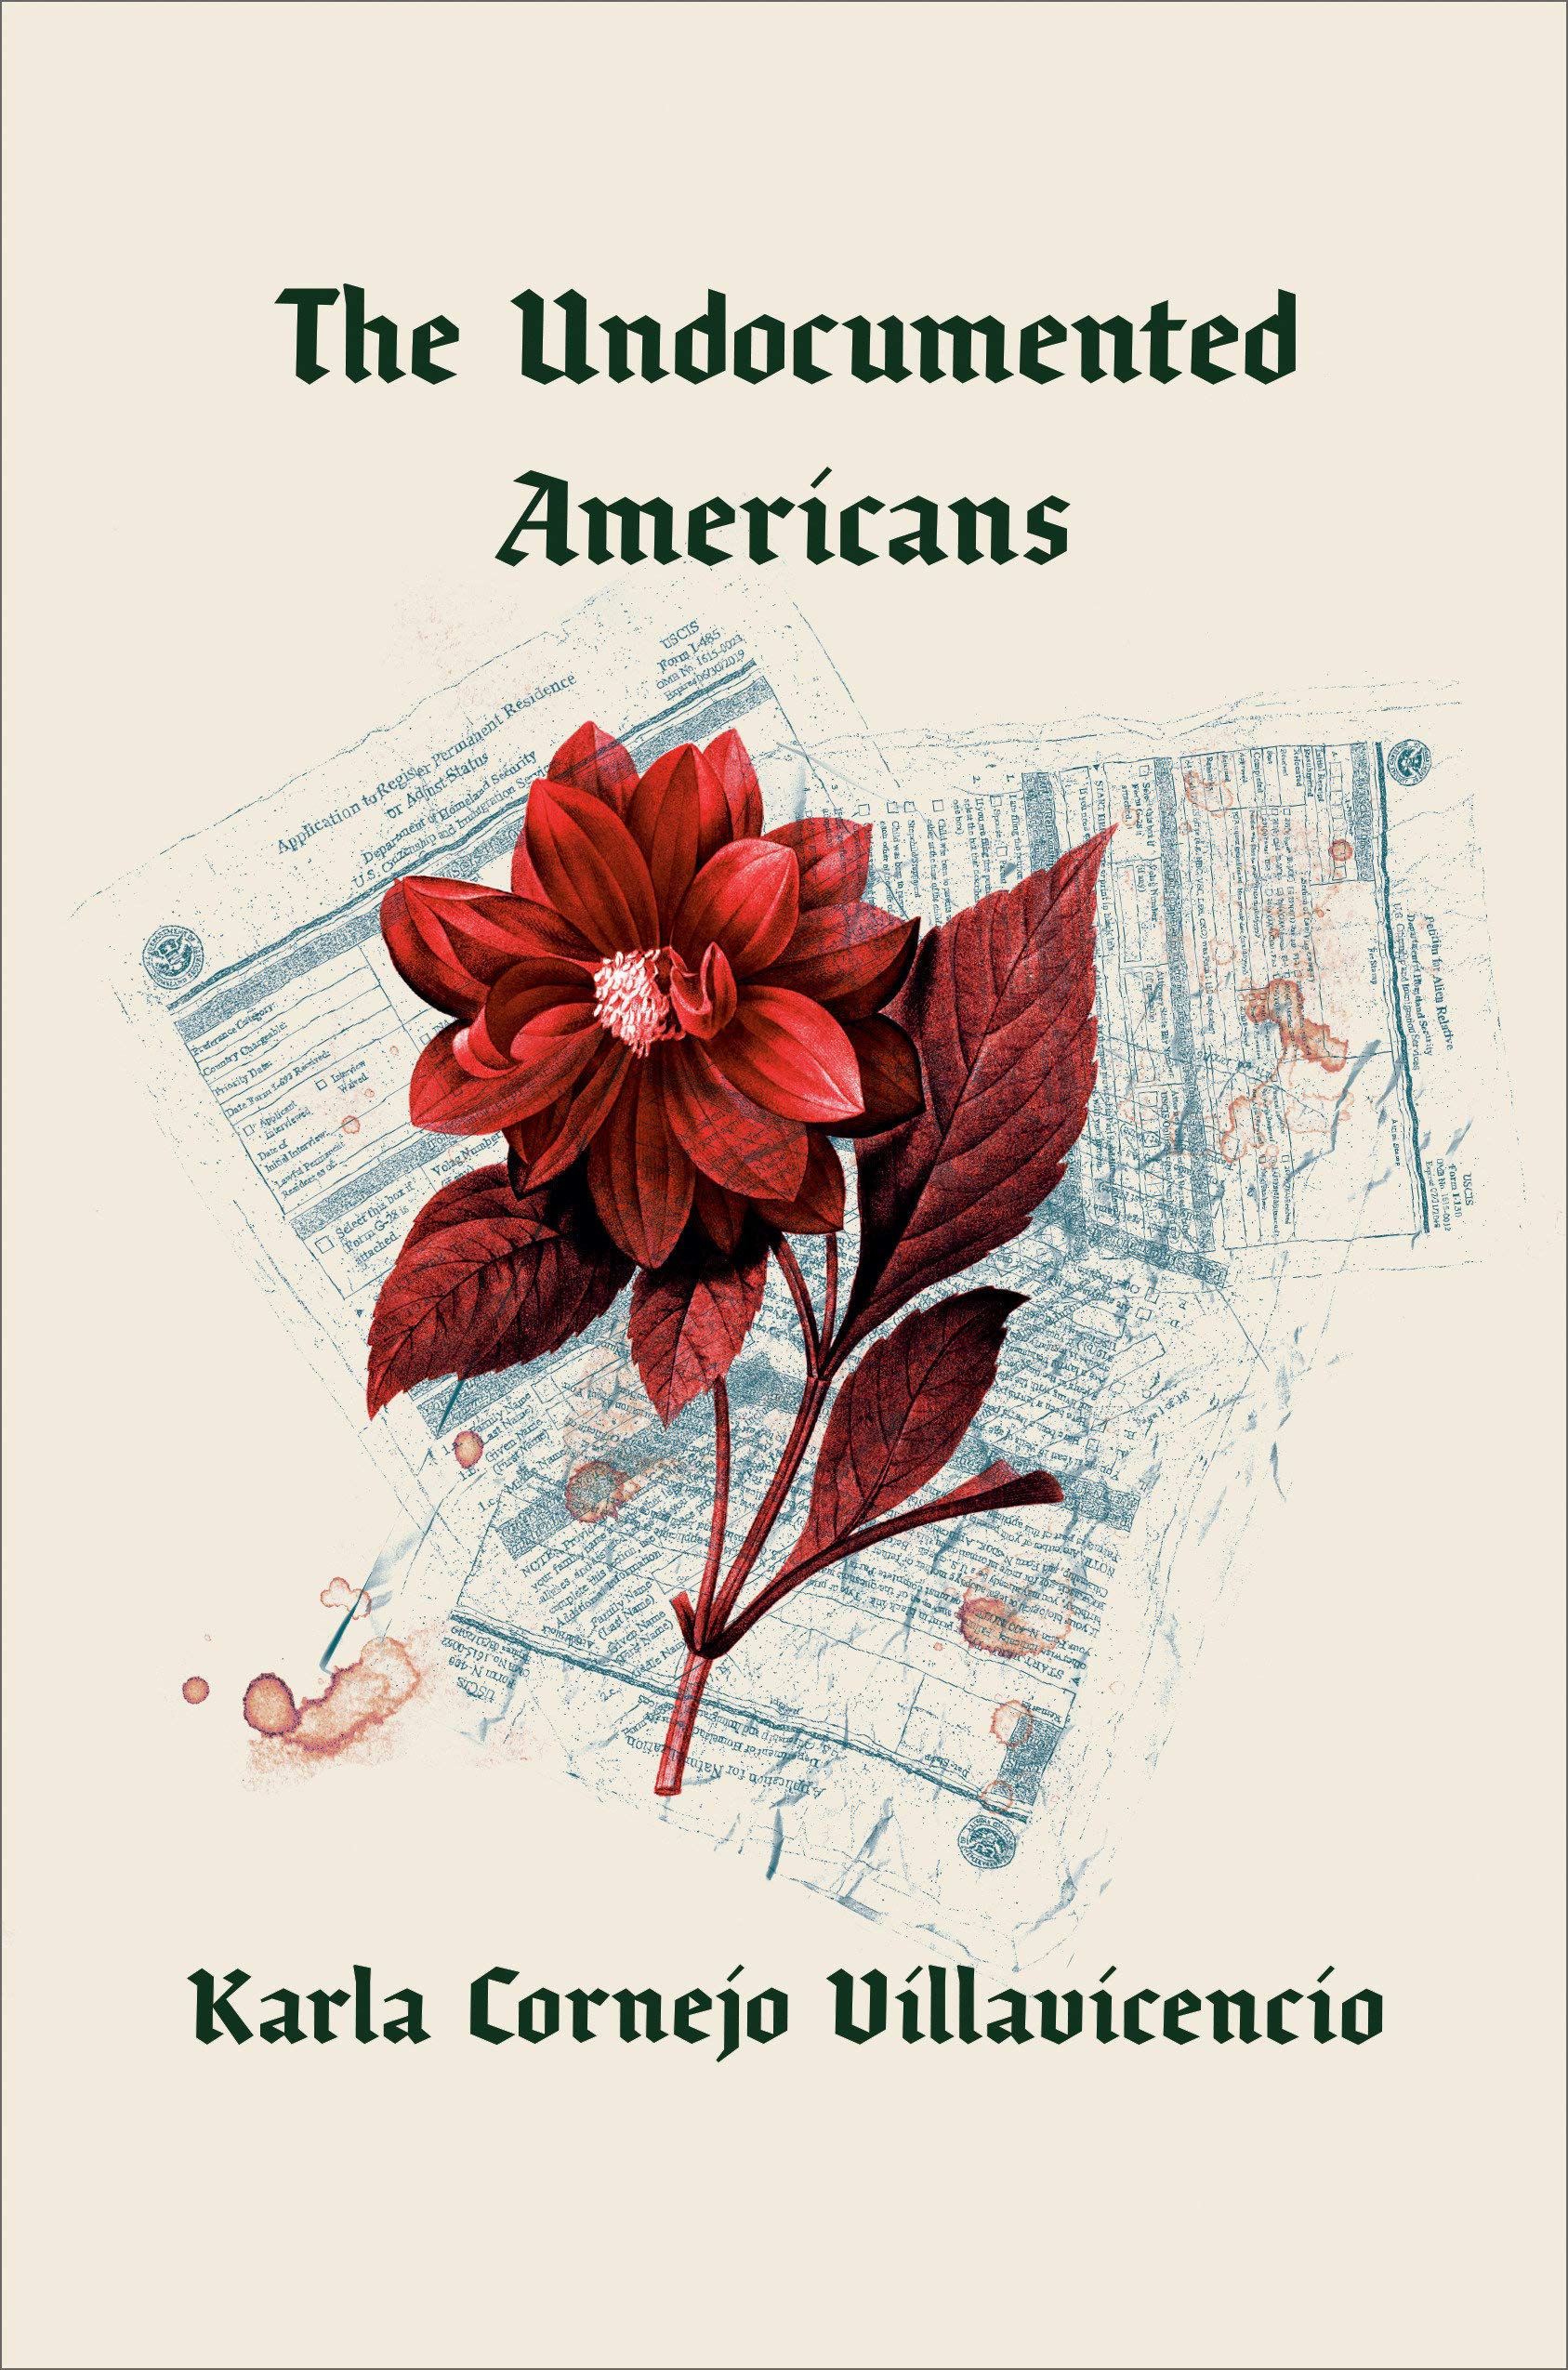 The Undocumented Americans, by Karla Cornejo